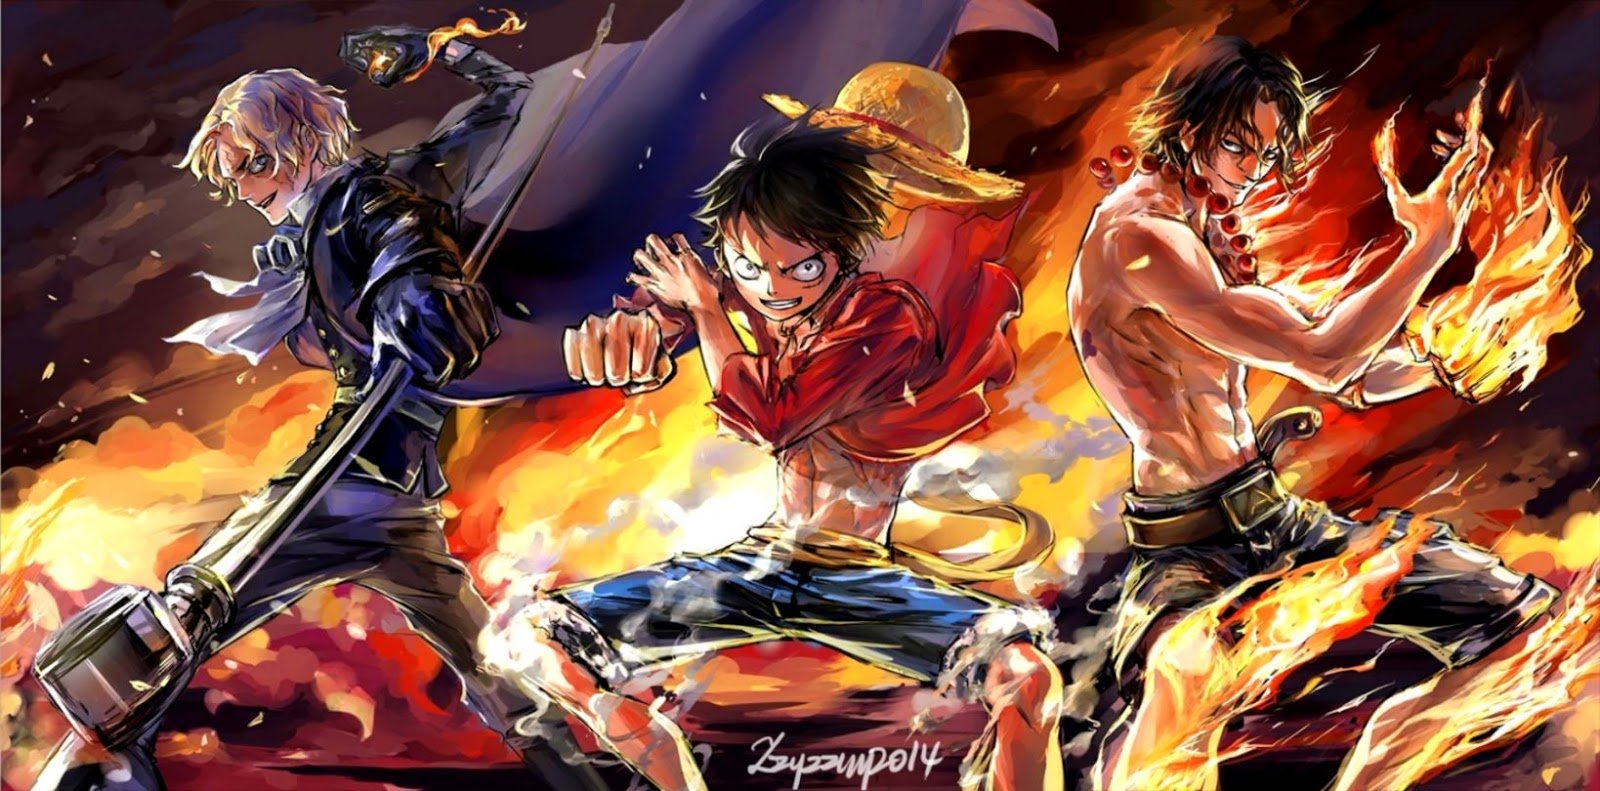 Anime One Piece Desktop Wallpaper Eazy Wallpapers